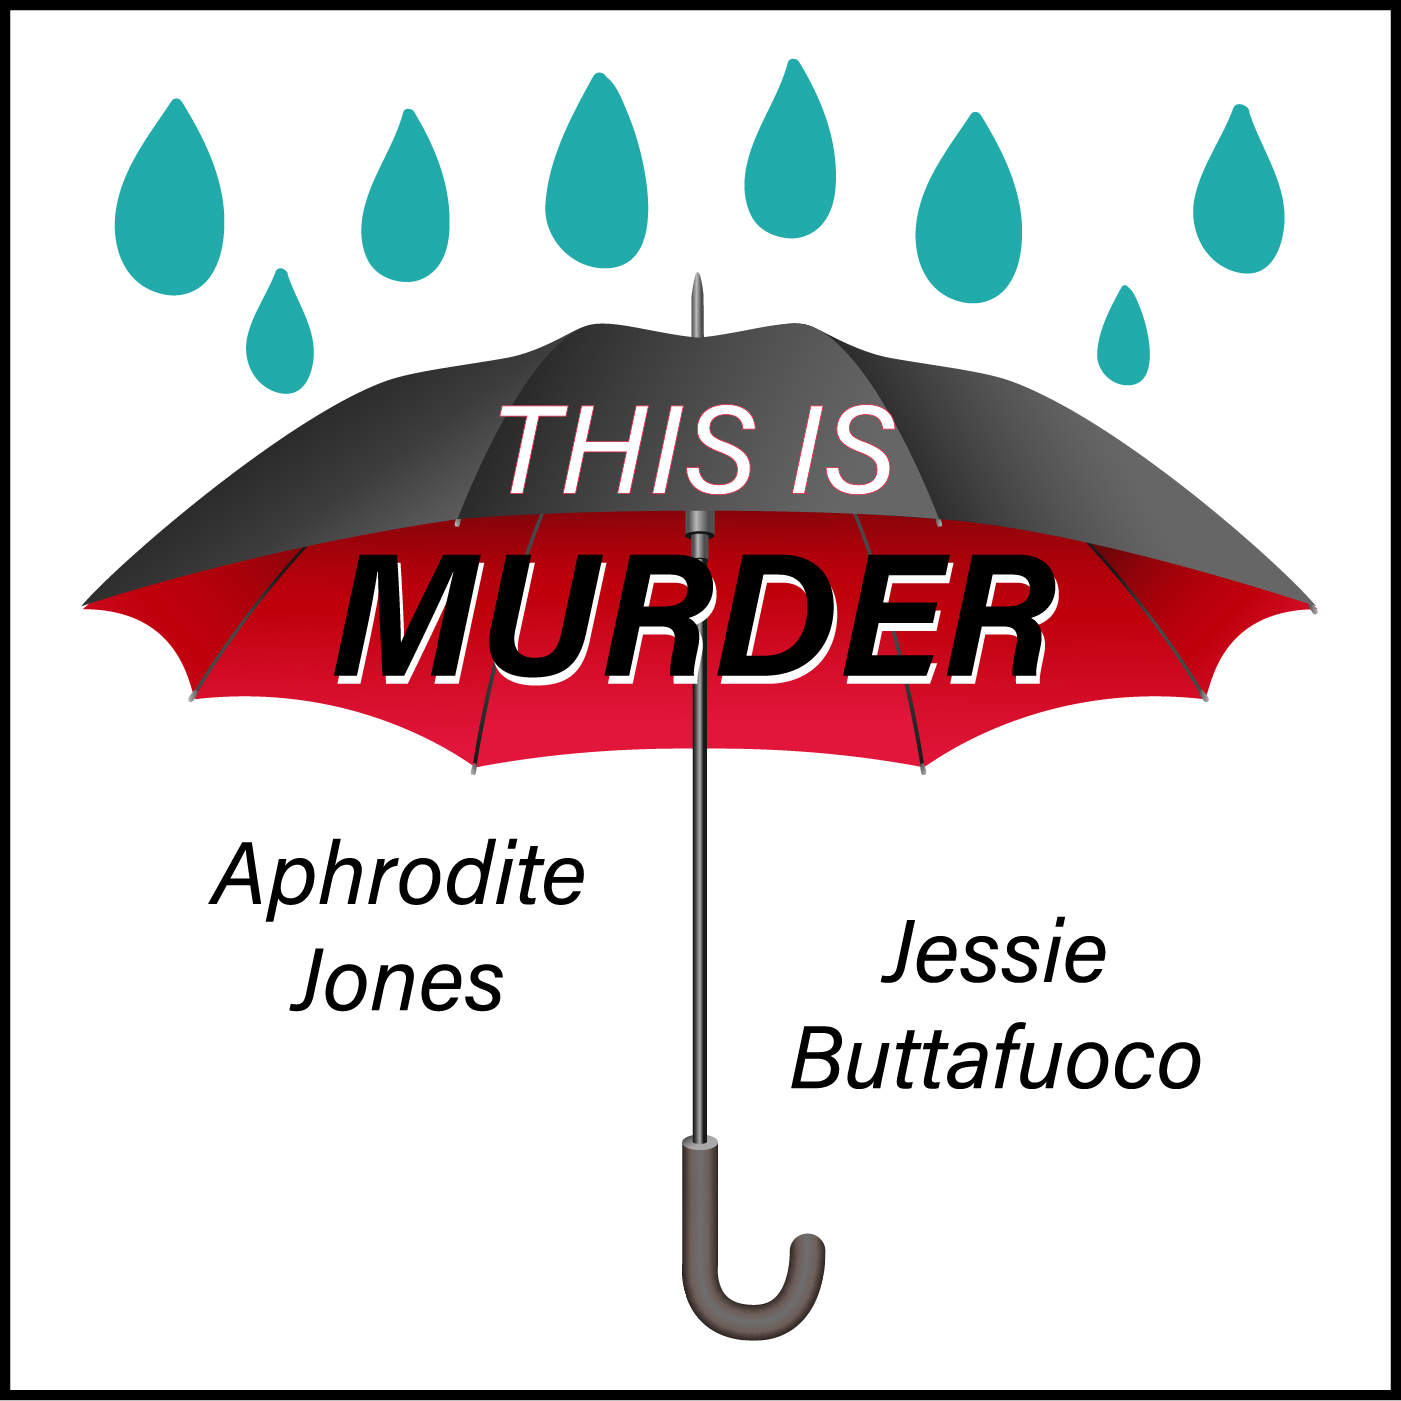 Episode 1: Fix The Hurt (Part 1) – This Is Murder Podcast – Podcast